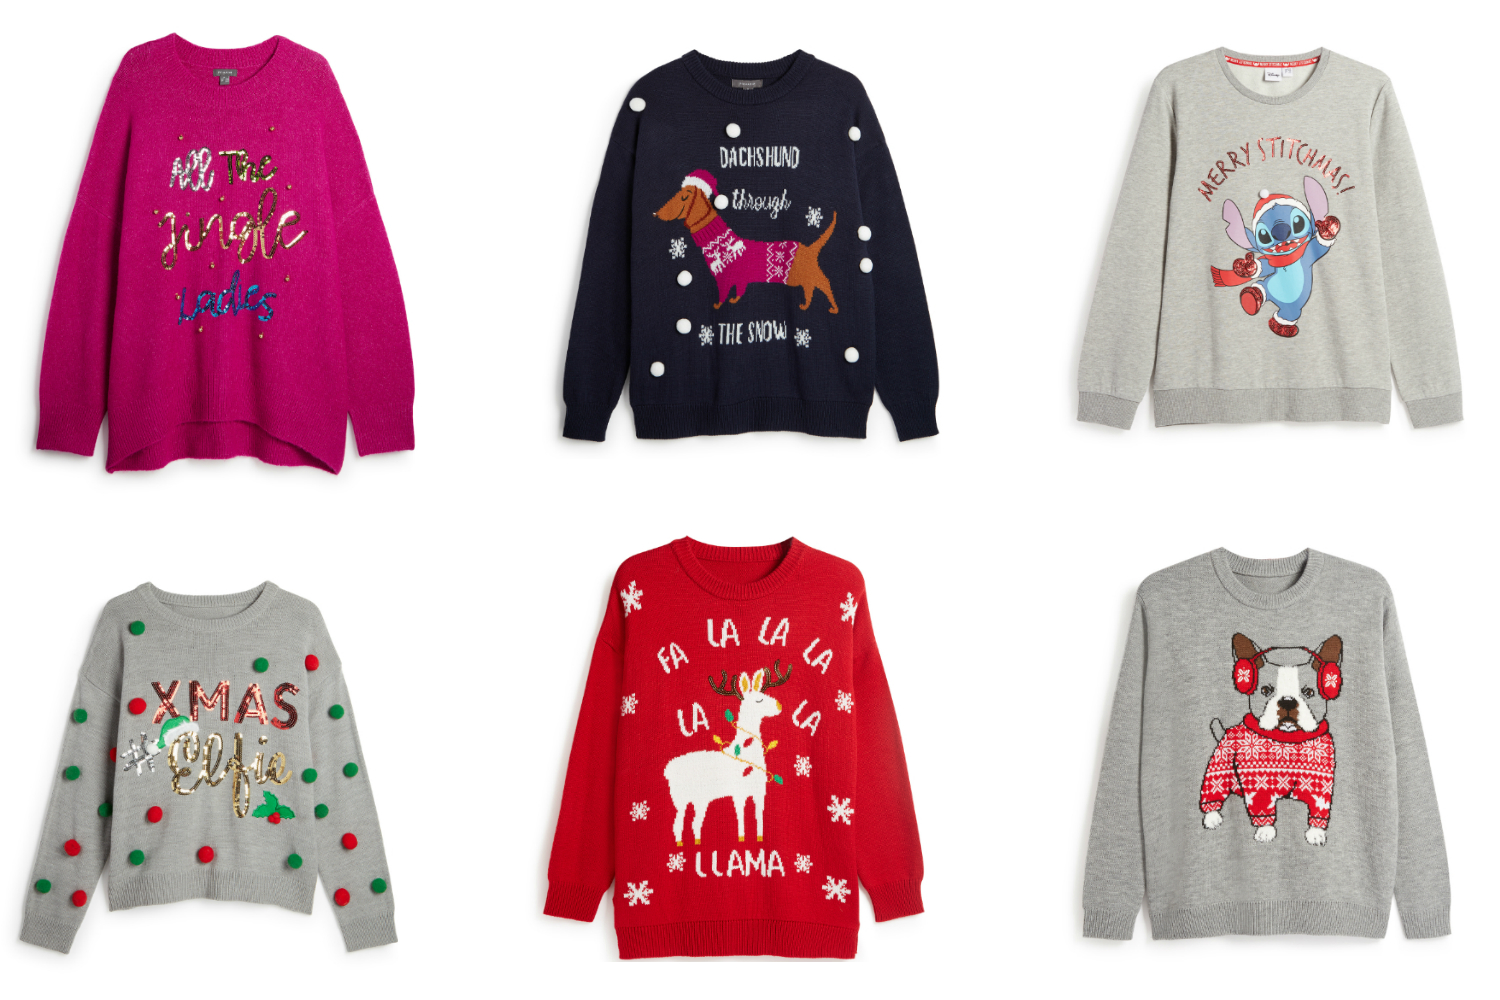 The New Primark Christmas Jumper Collection Has Got Us